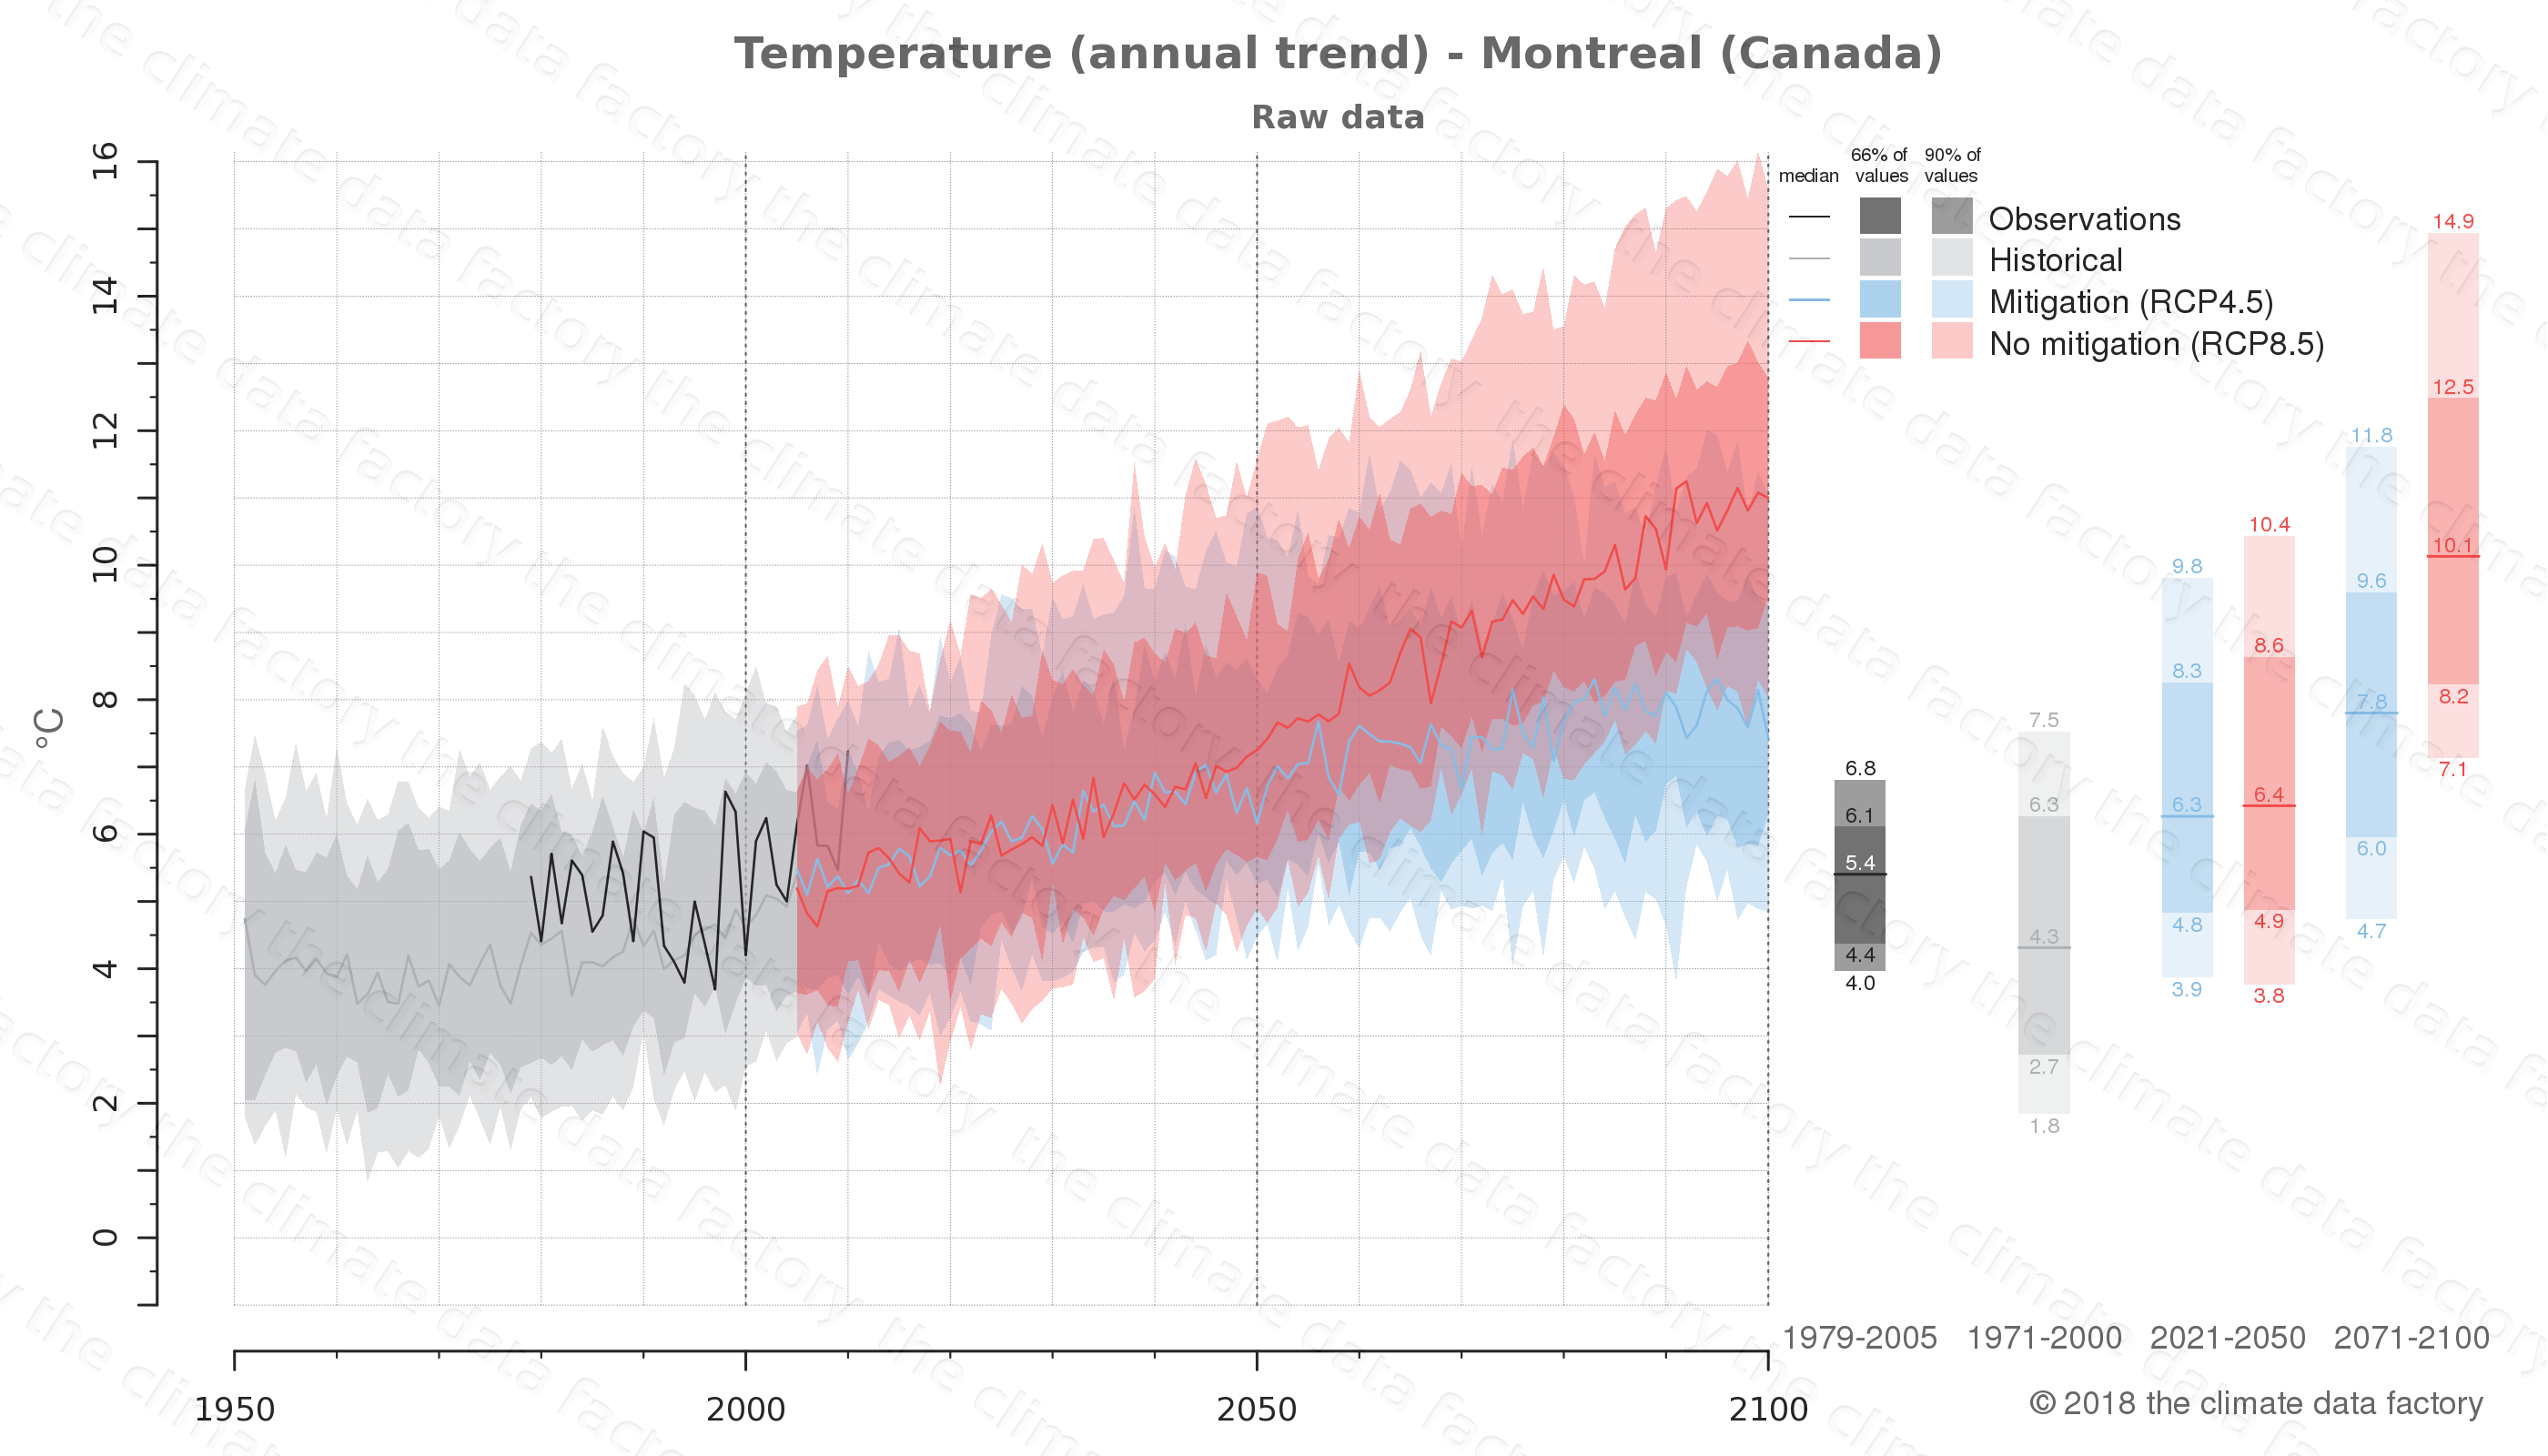 climate change data policy adaptation climate graph city data temperature montreal canada